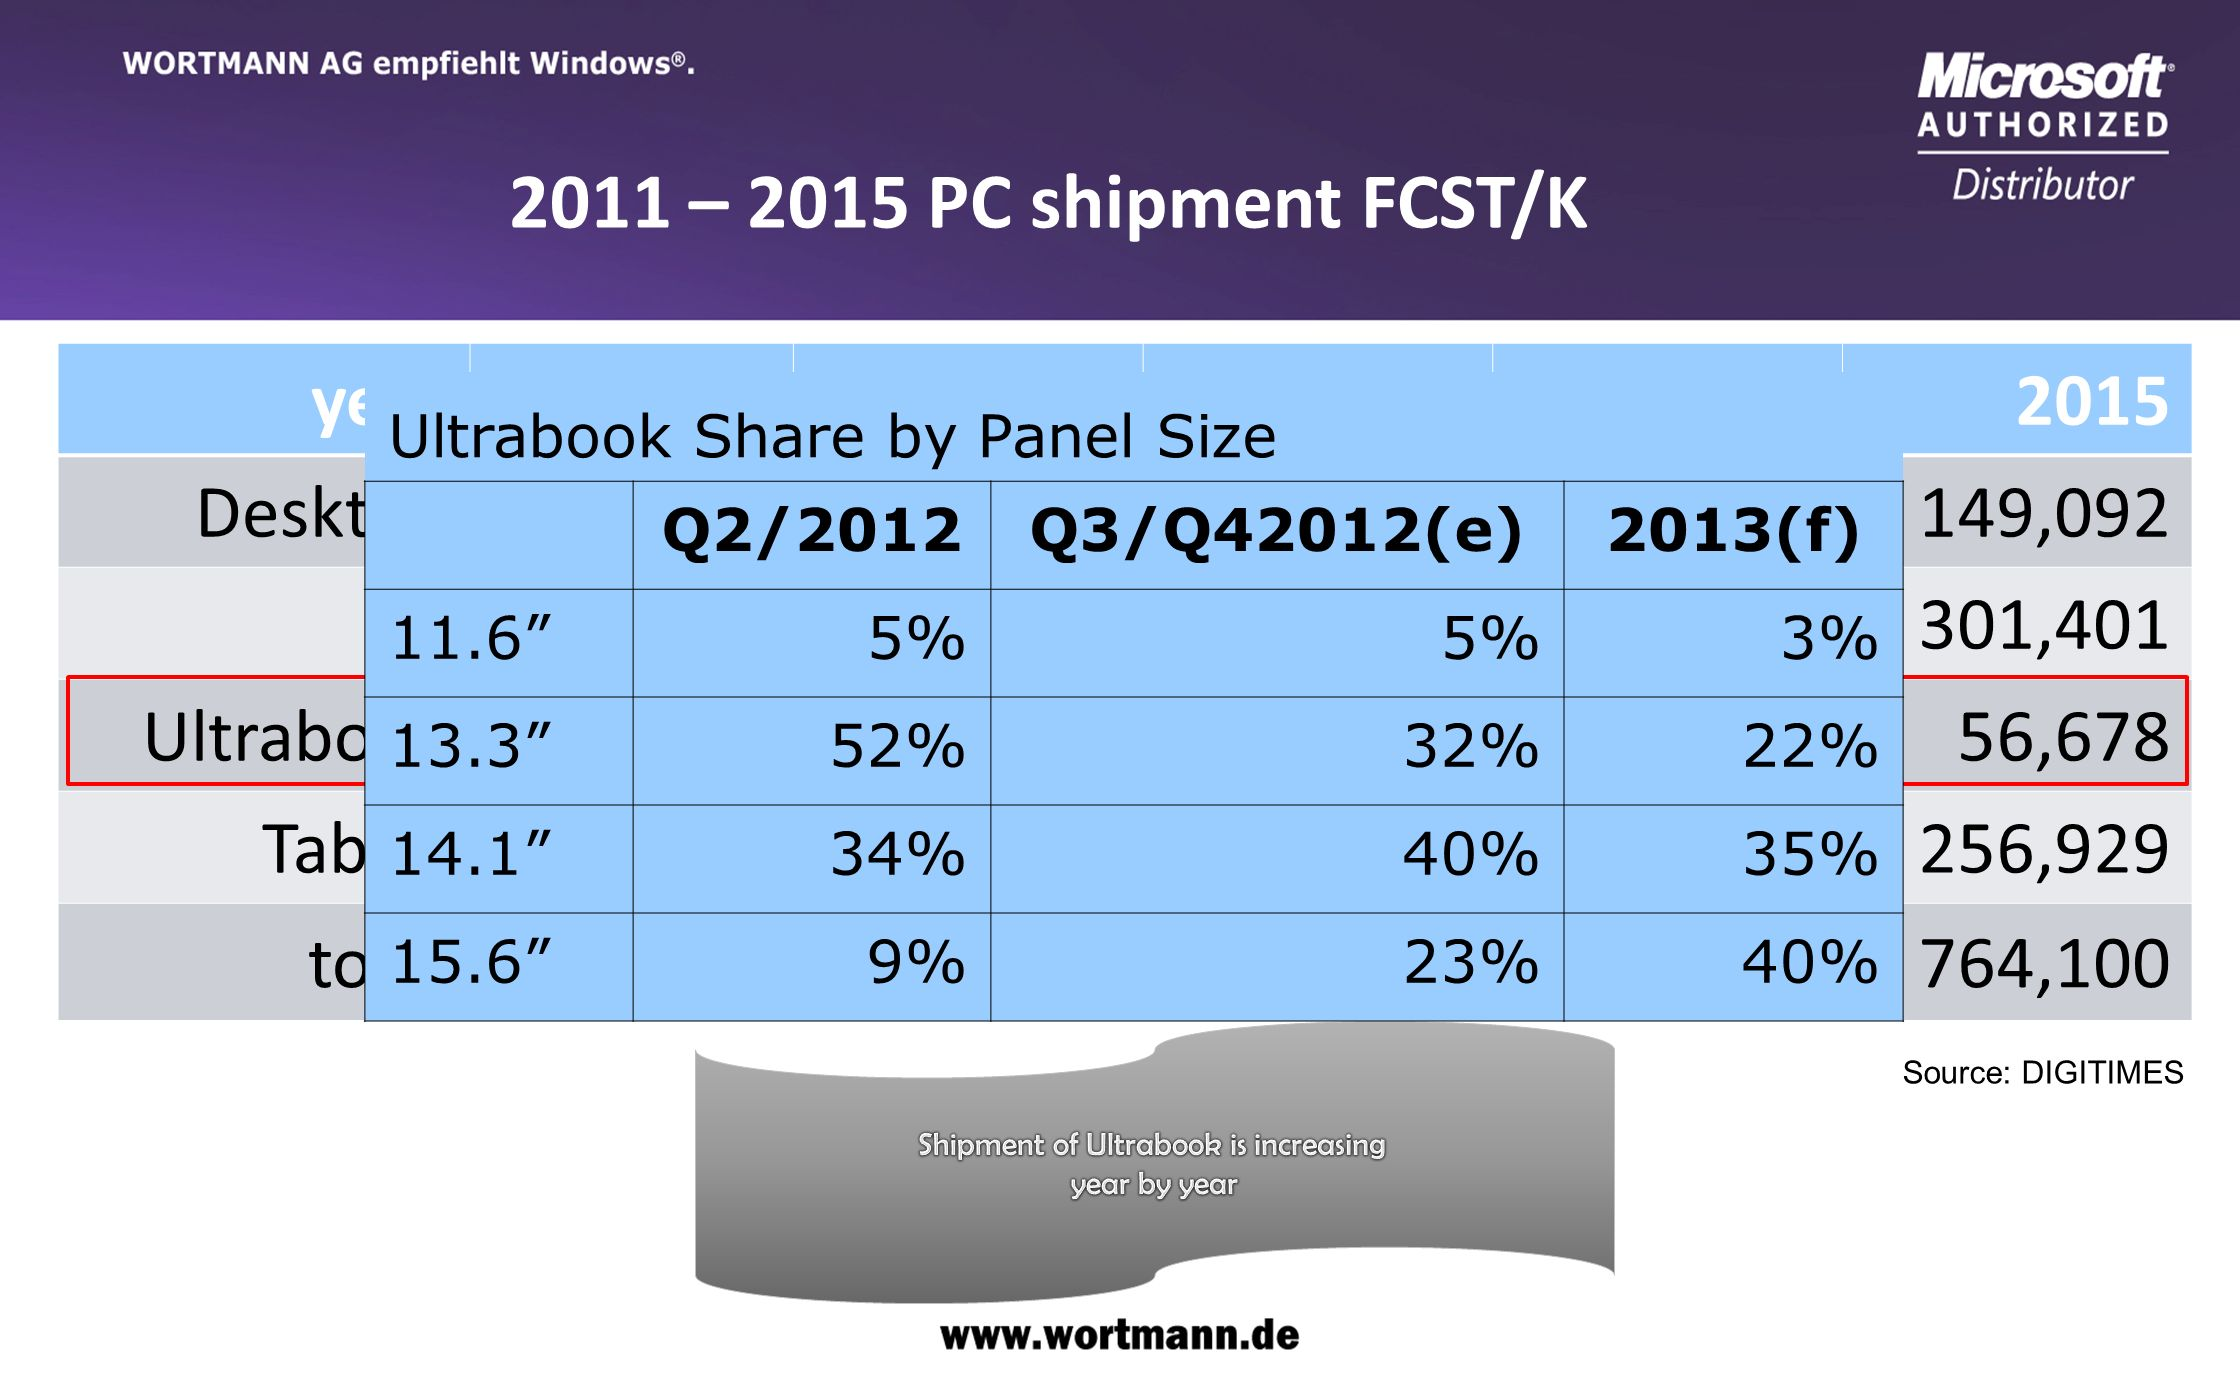 Shipment of Ultrabook is increasing